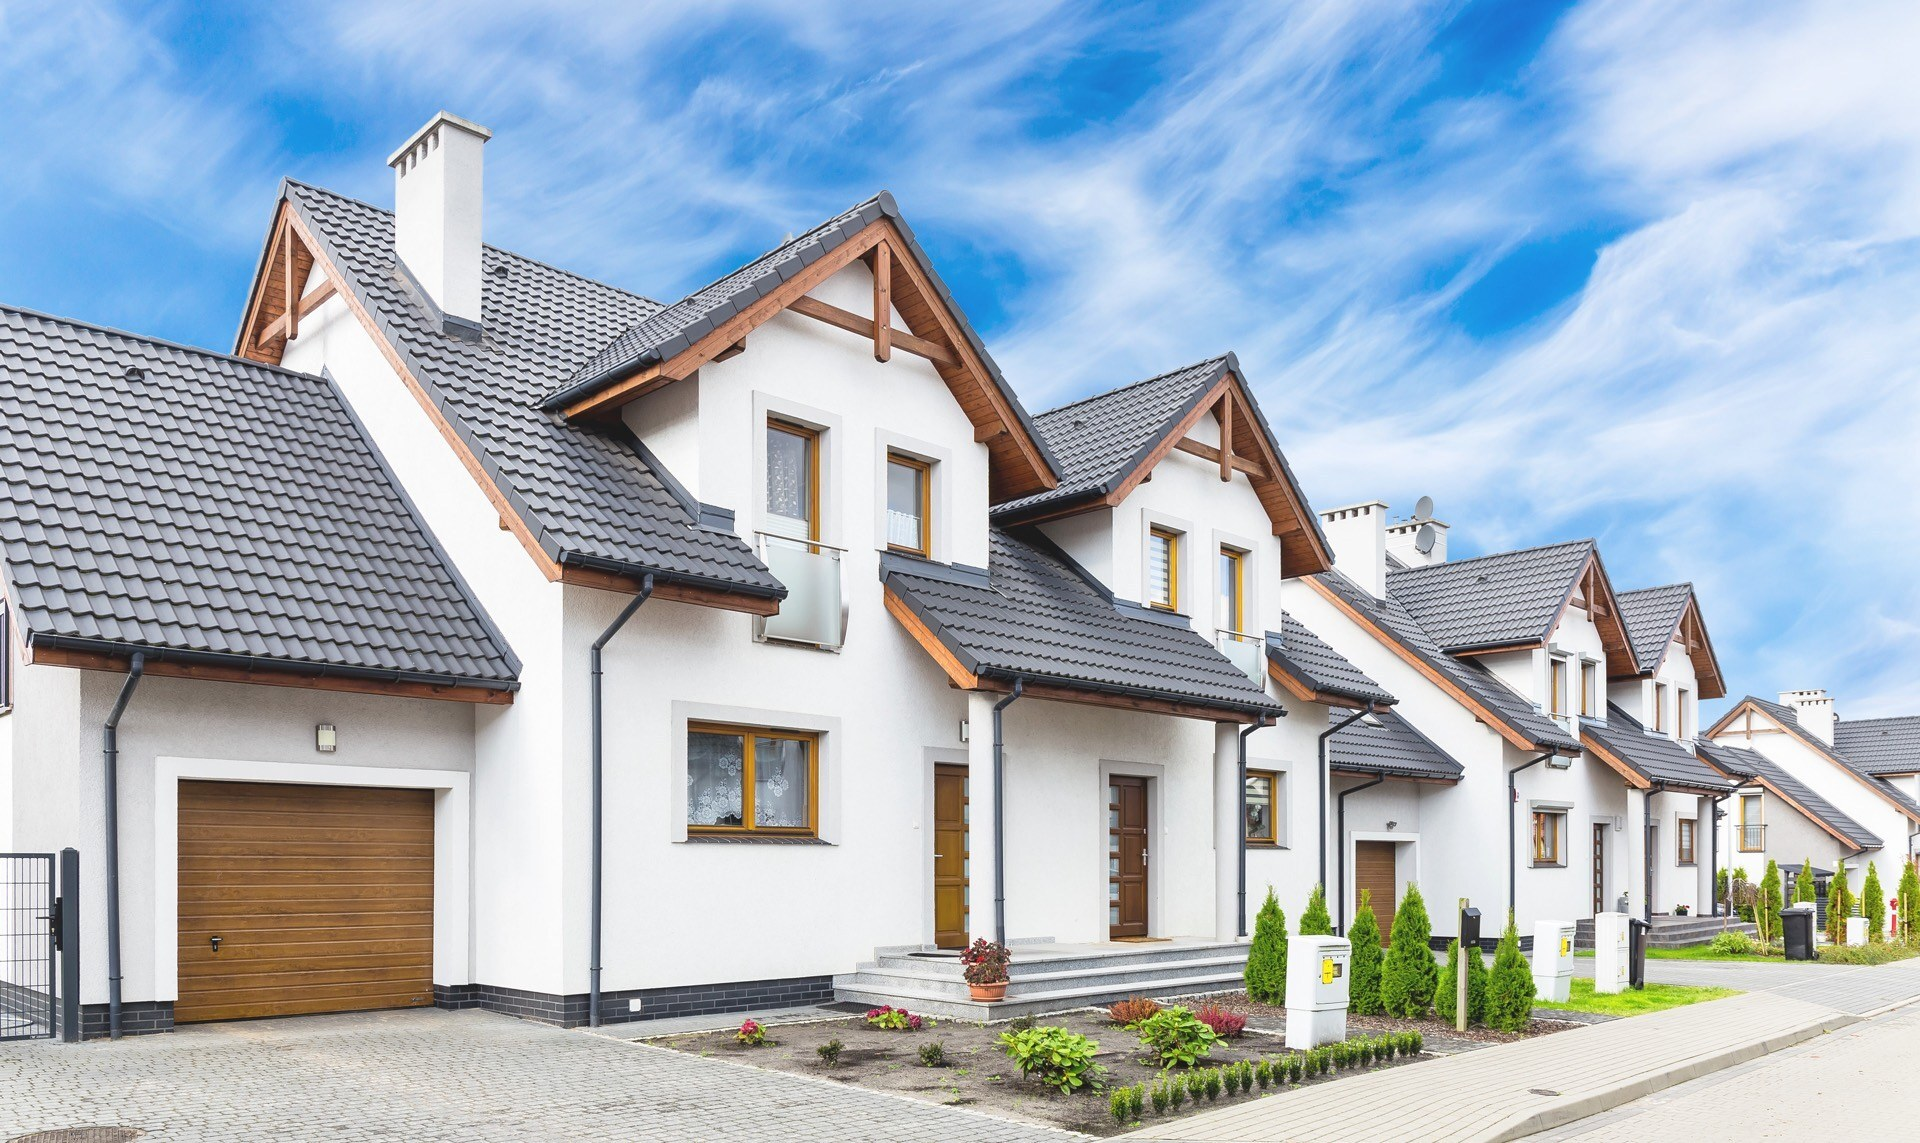 Home Building Finance Ireland opens for business with an initial €750m to fund home building and site acquisition